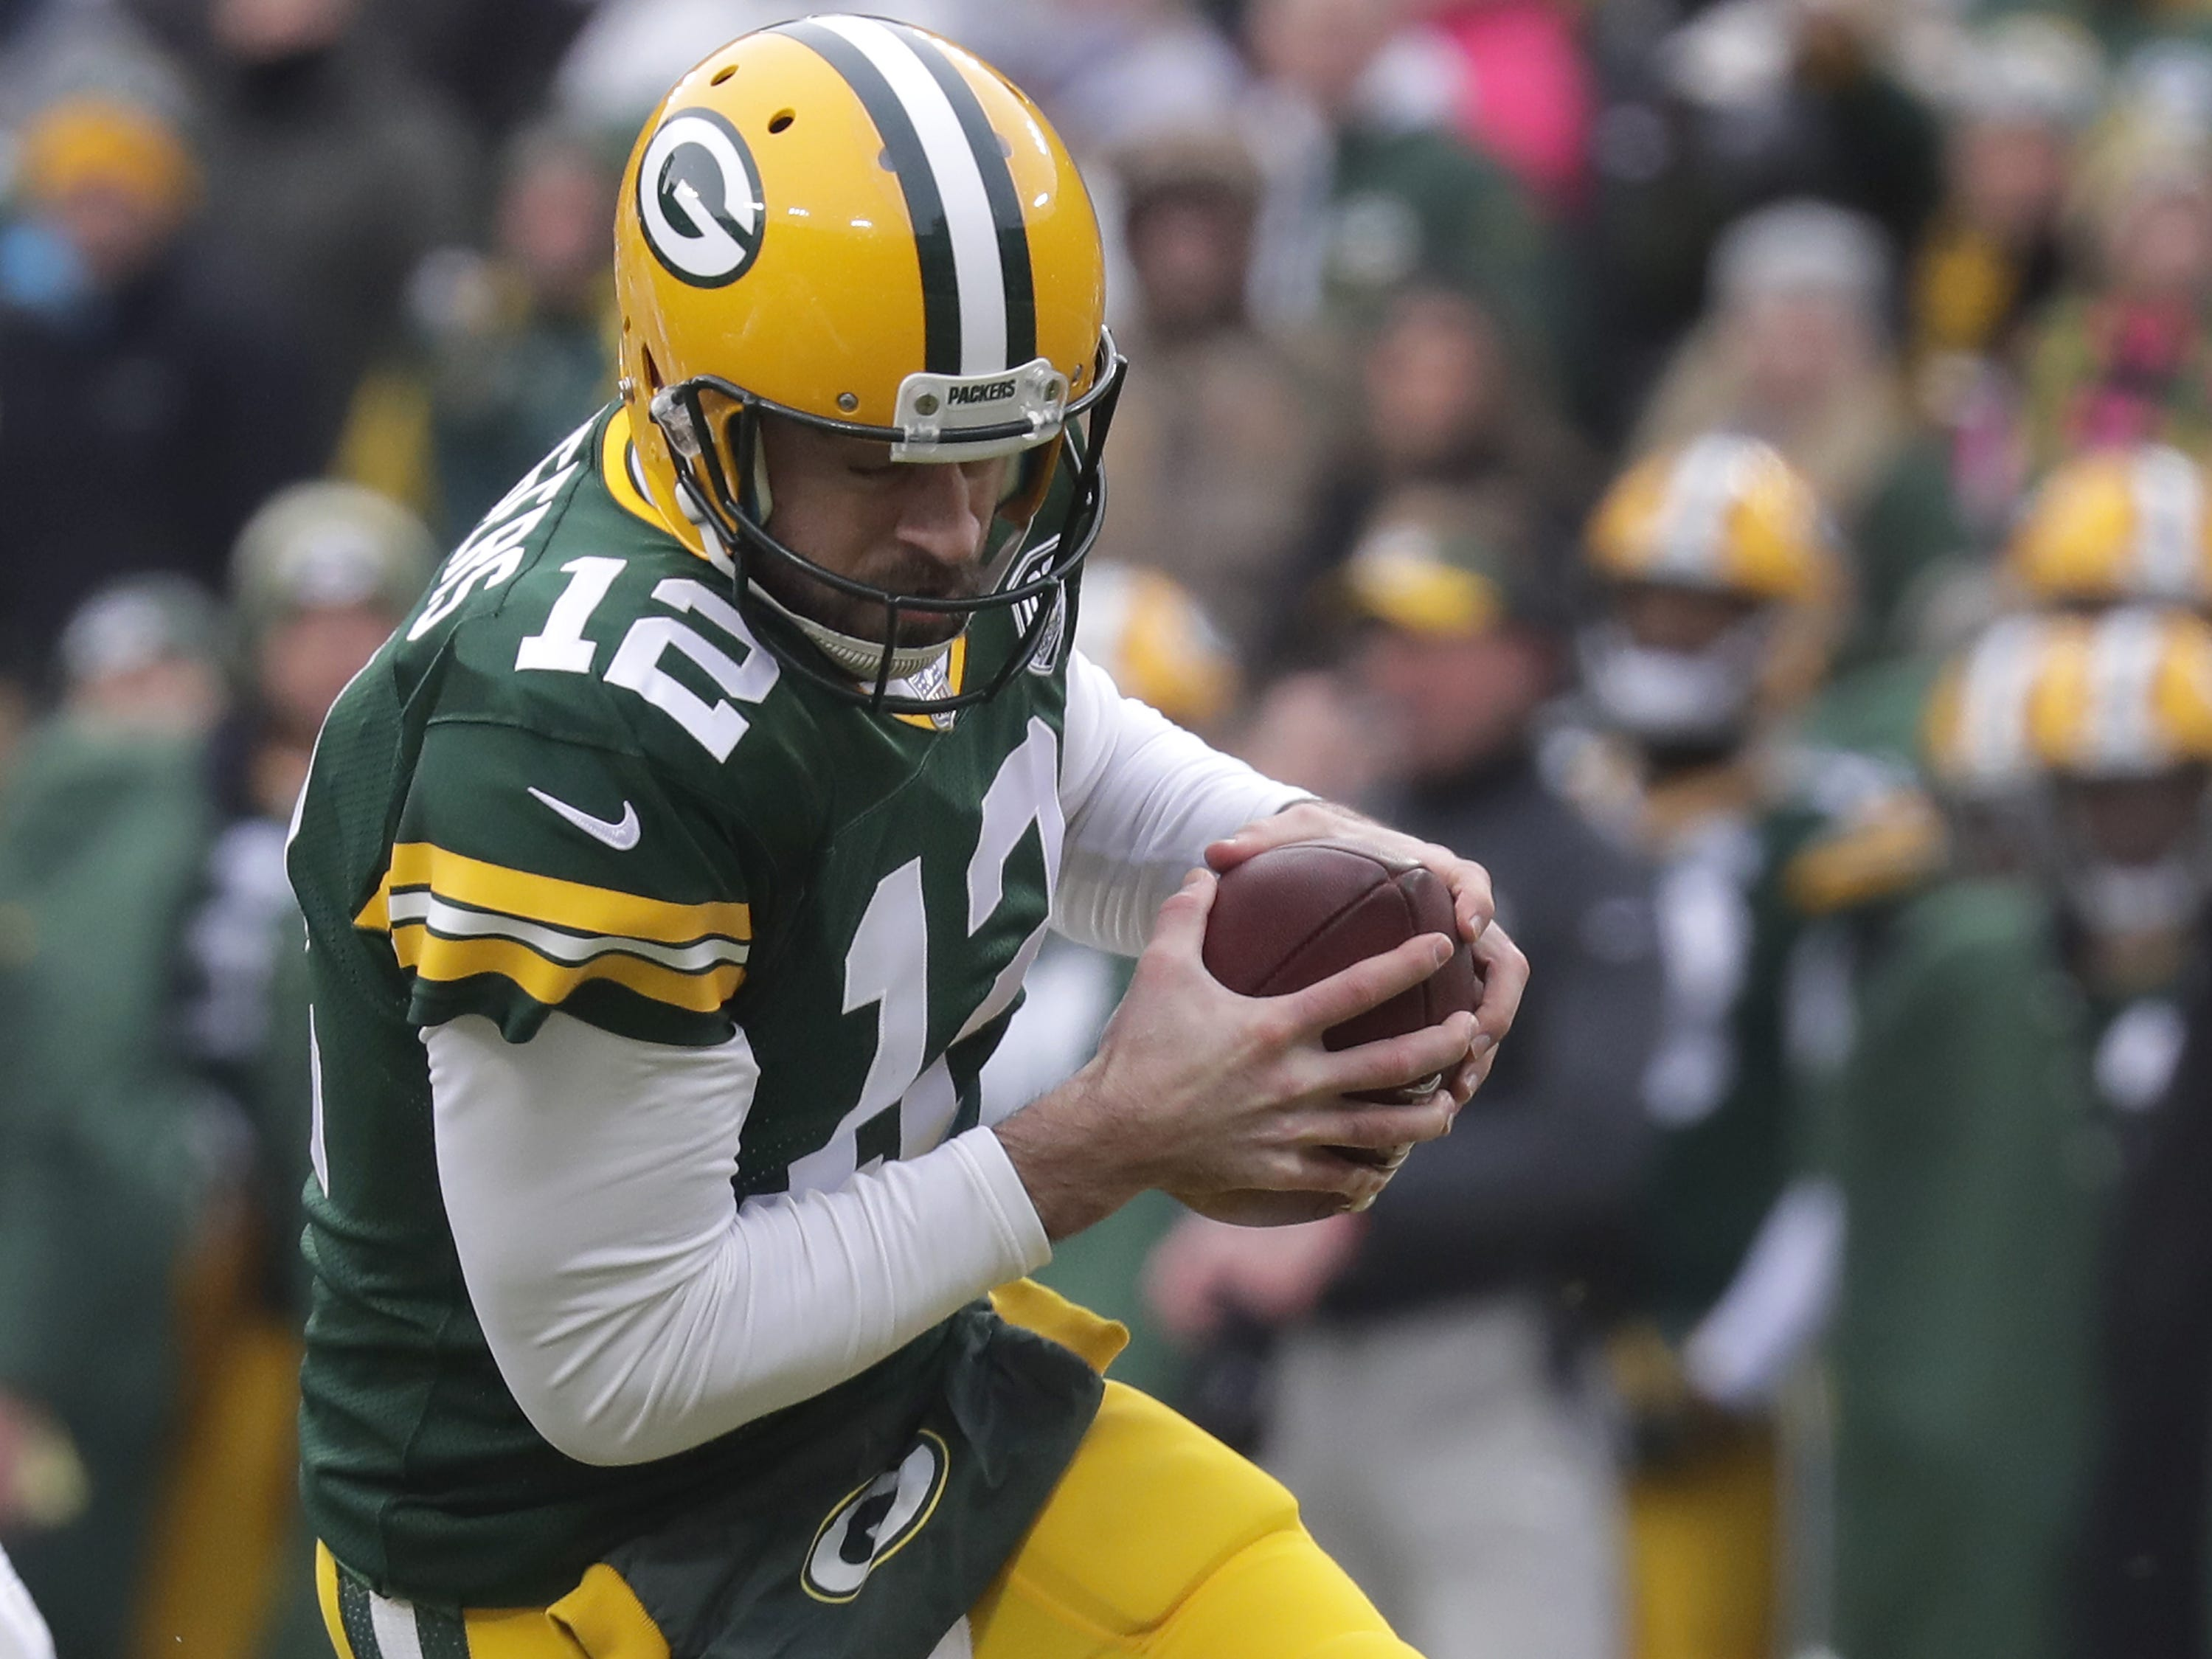 Detroit Lions Jarrad Davis chases Green Bay Packers quarterback Aaron Rodgers in the firest quarter during their football game on Sunday, December 30, 2018, at Lambeau Field in Green Bay, Wis. Wm. Glasheen/USA TODAY NETWORK-Wisconsin.